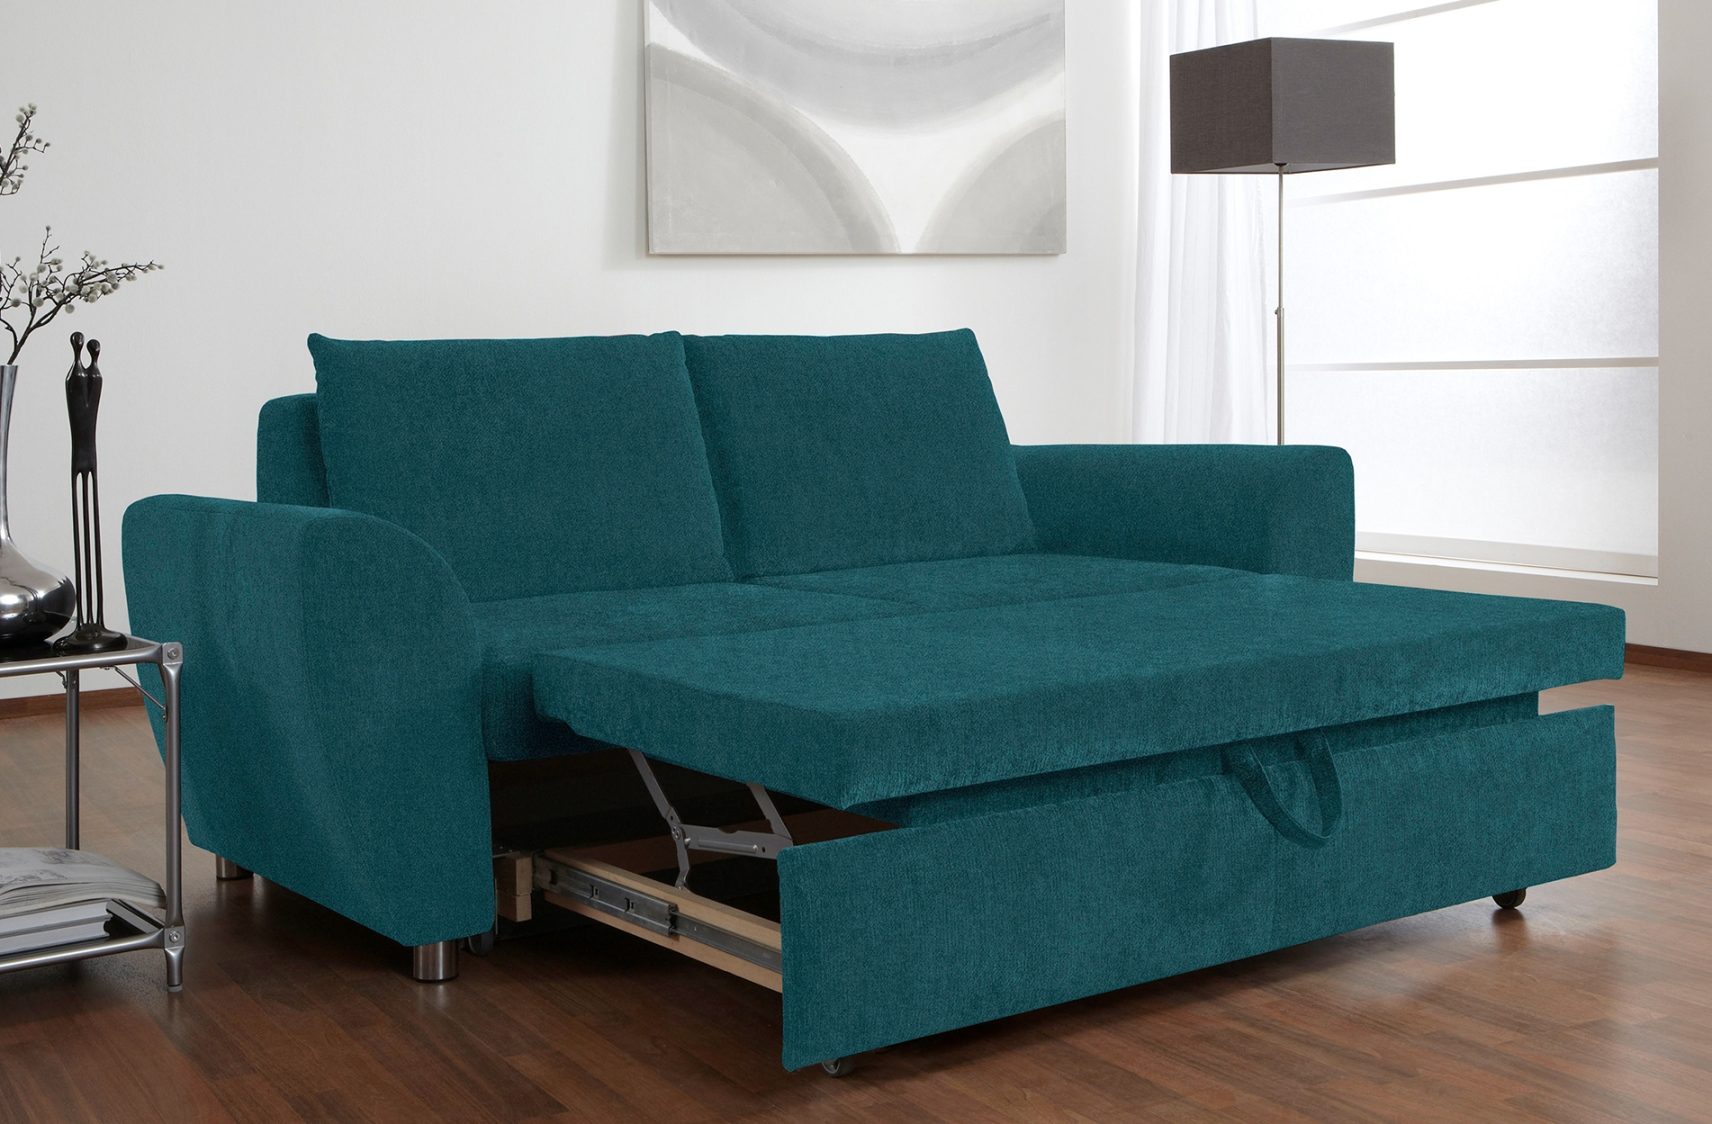 Essen sleeper sofa the best pull out sofa bed by nordholtz for European beds for sale